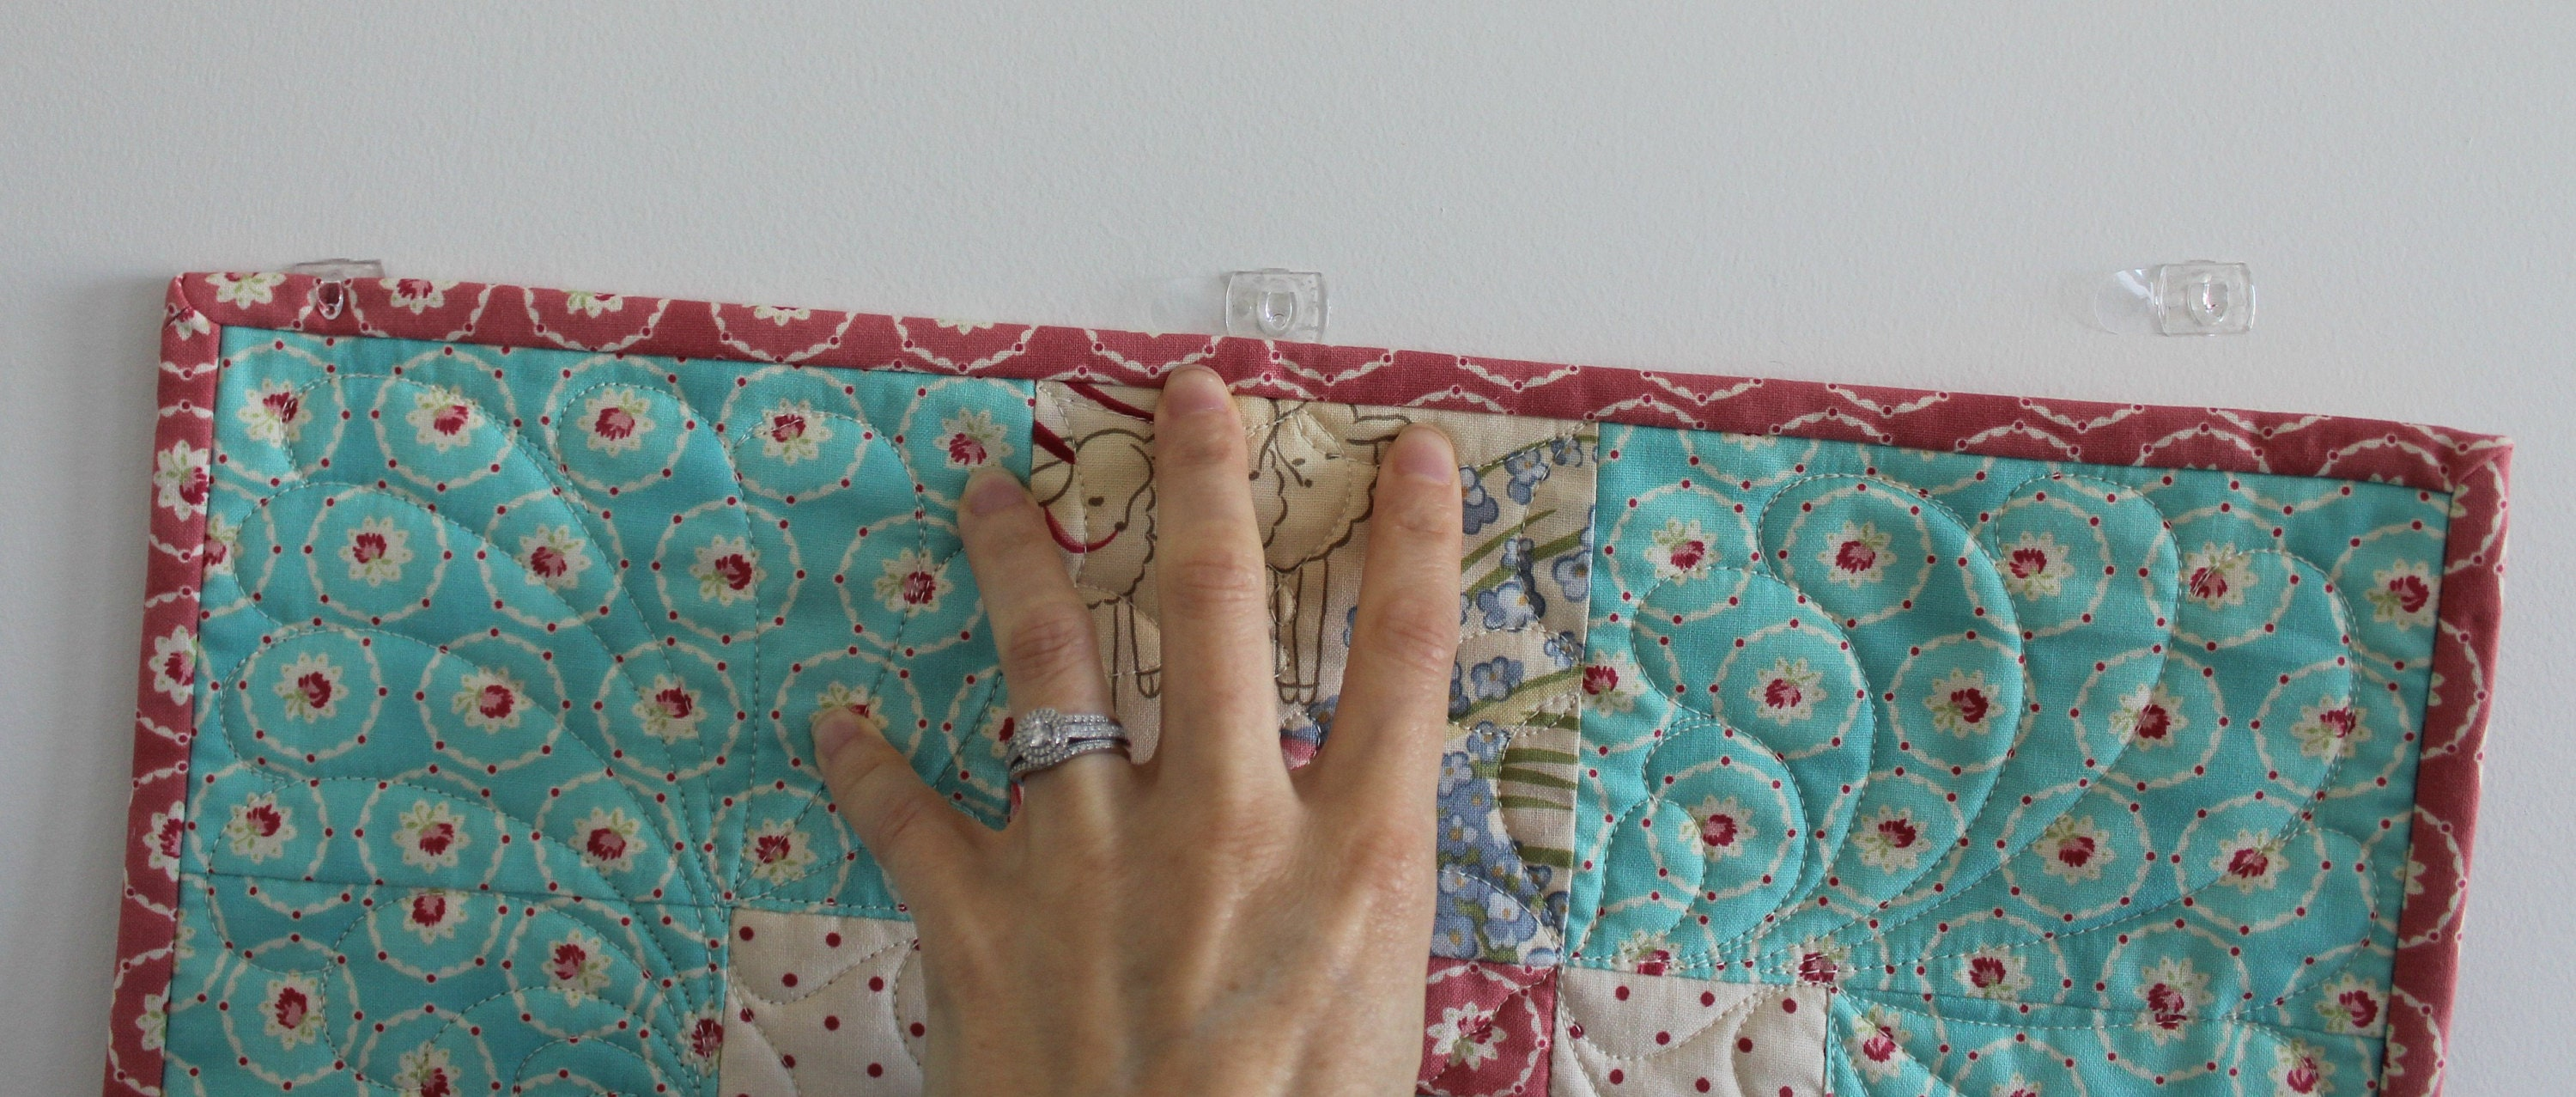 Slide the quilt into the hooks that are turned upside down and voila!  Your quilt is hanging!